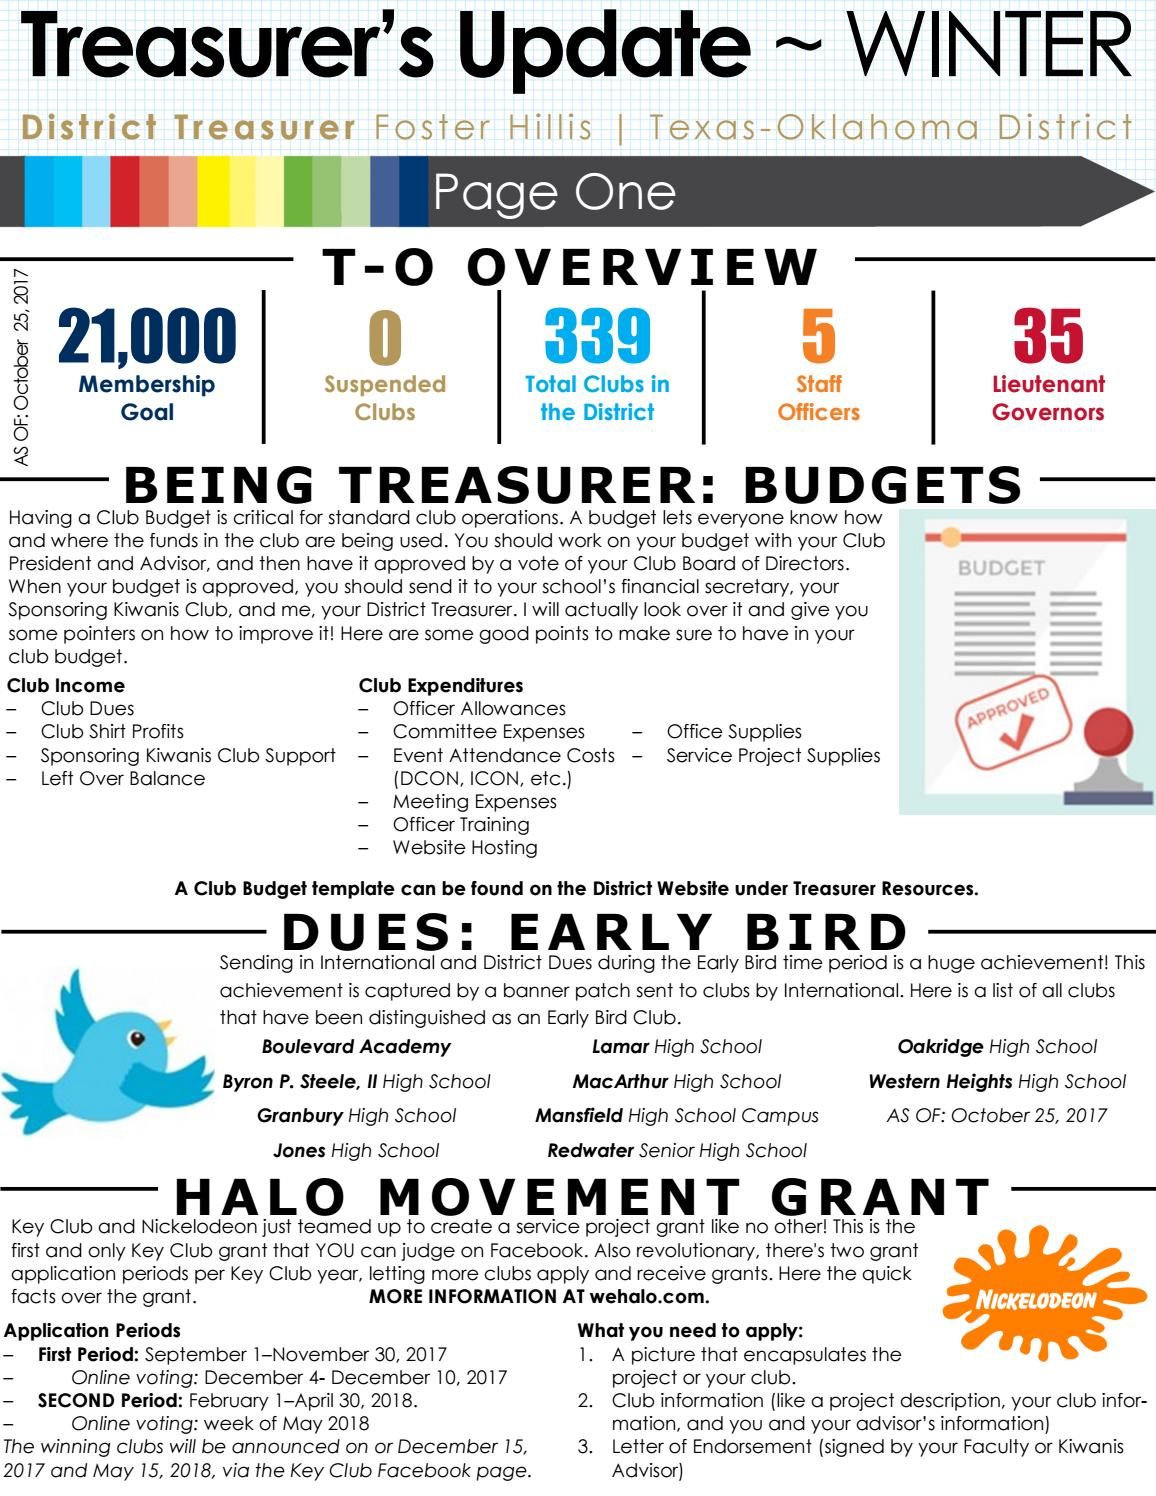 Winter Newsletter By Texas Oklahoma District Treasurer Issuu